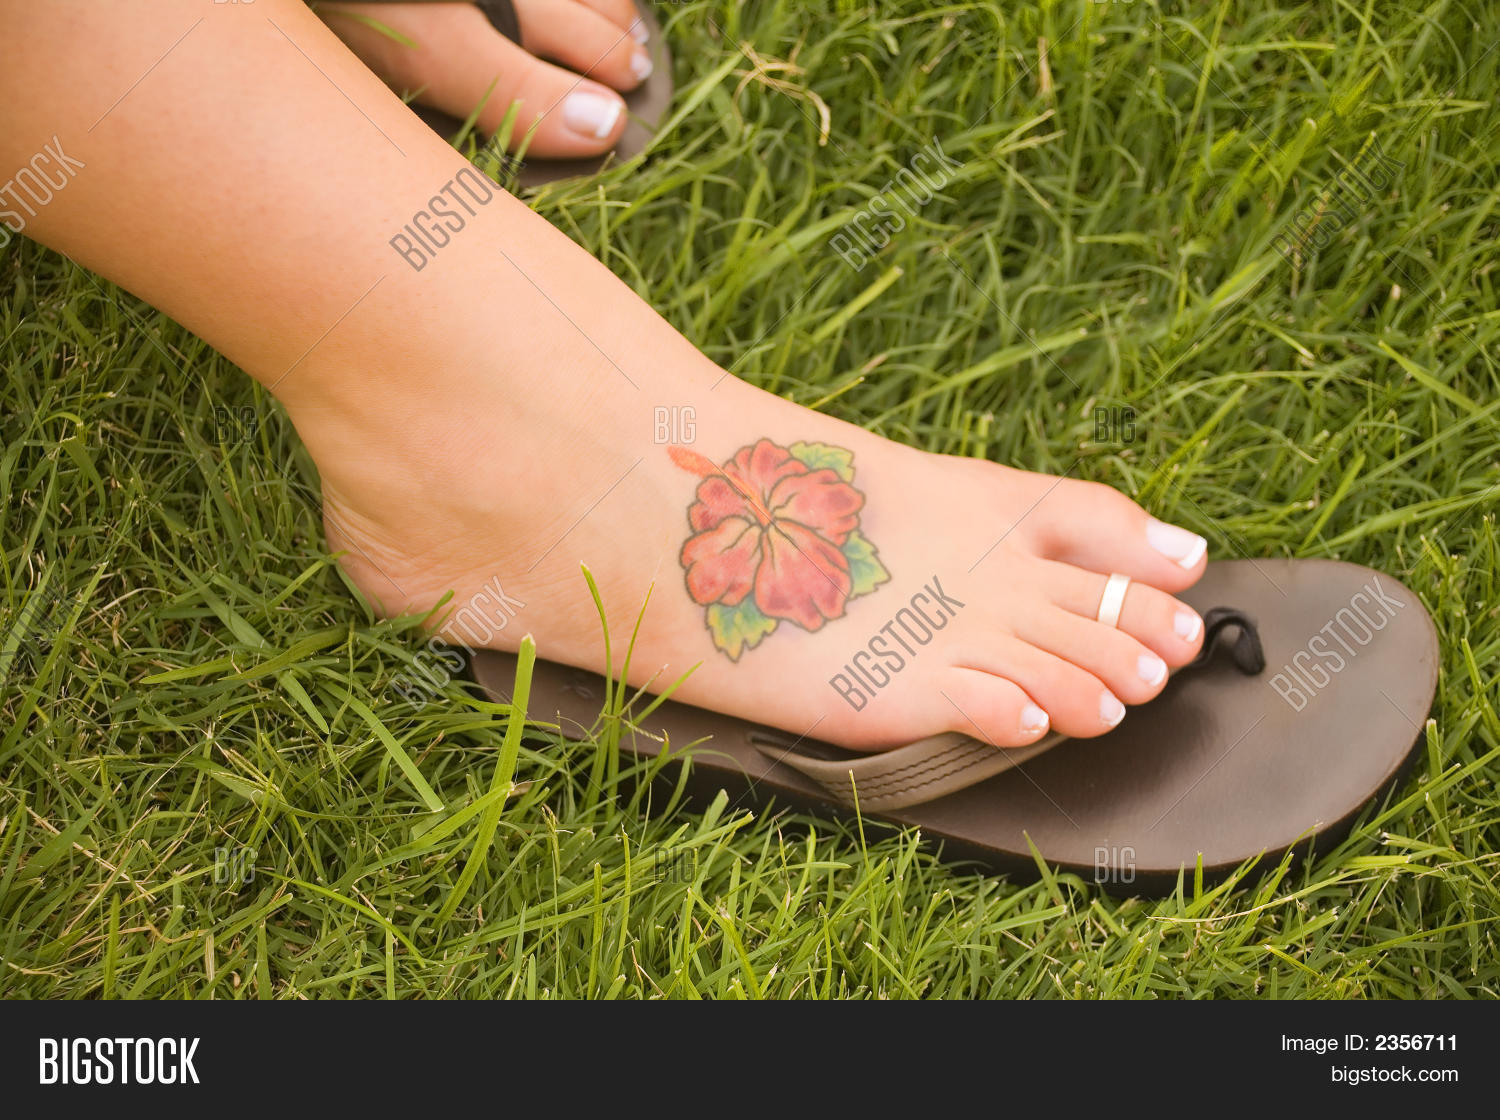 Womans foot on sandal image photo free trial bigstock womans foot on a sandal with a hawaiian hibiscus flower tattoo izmirmasajfo